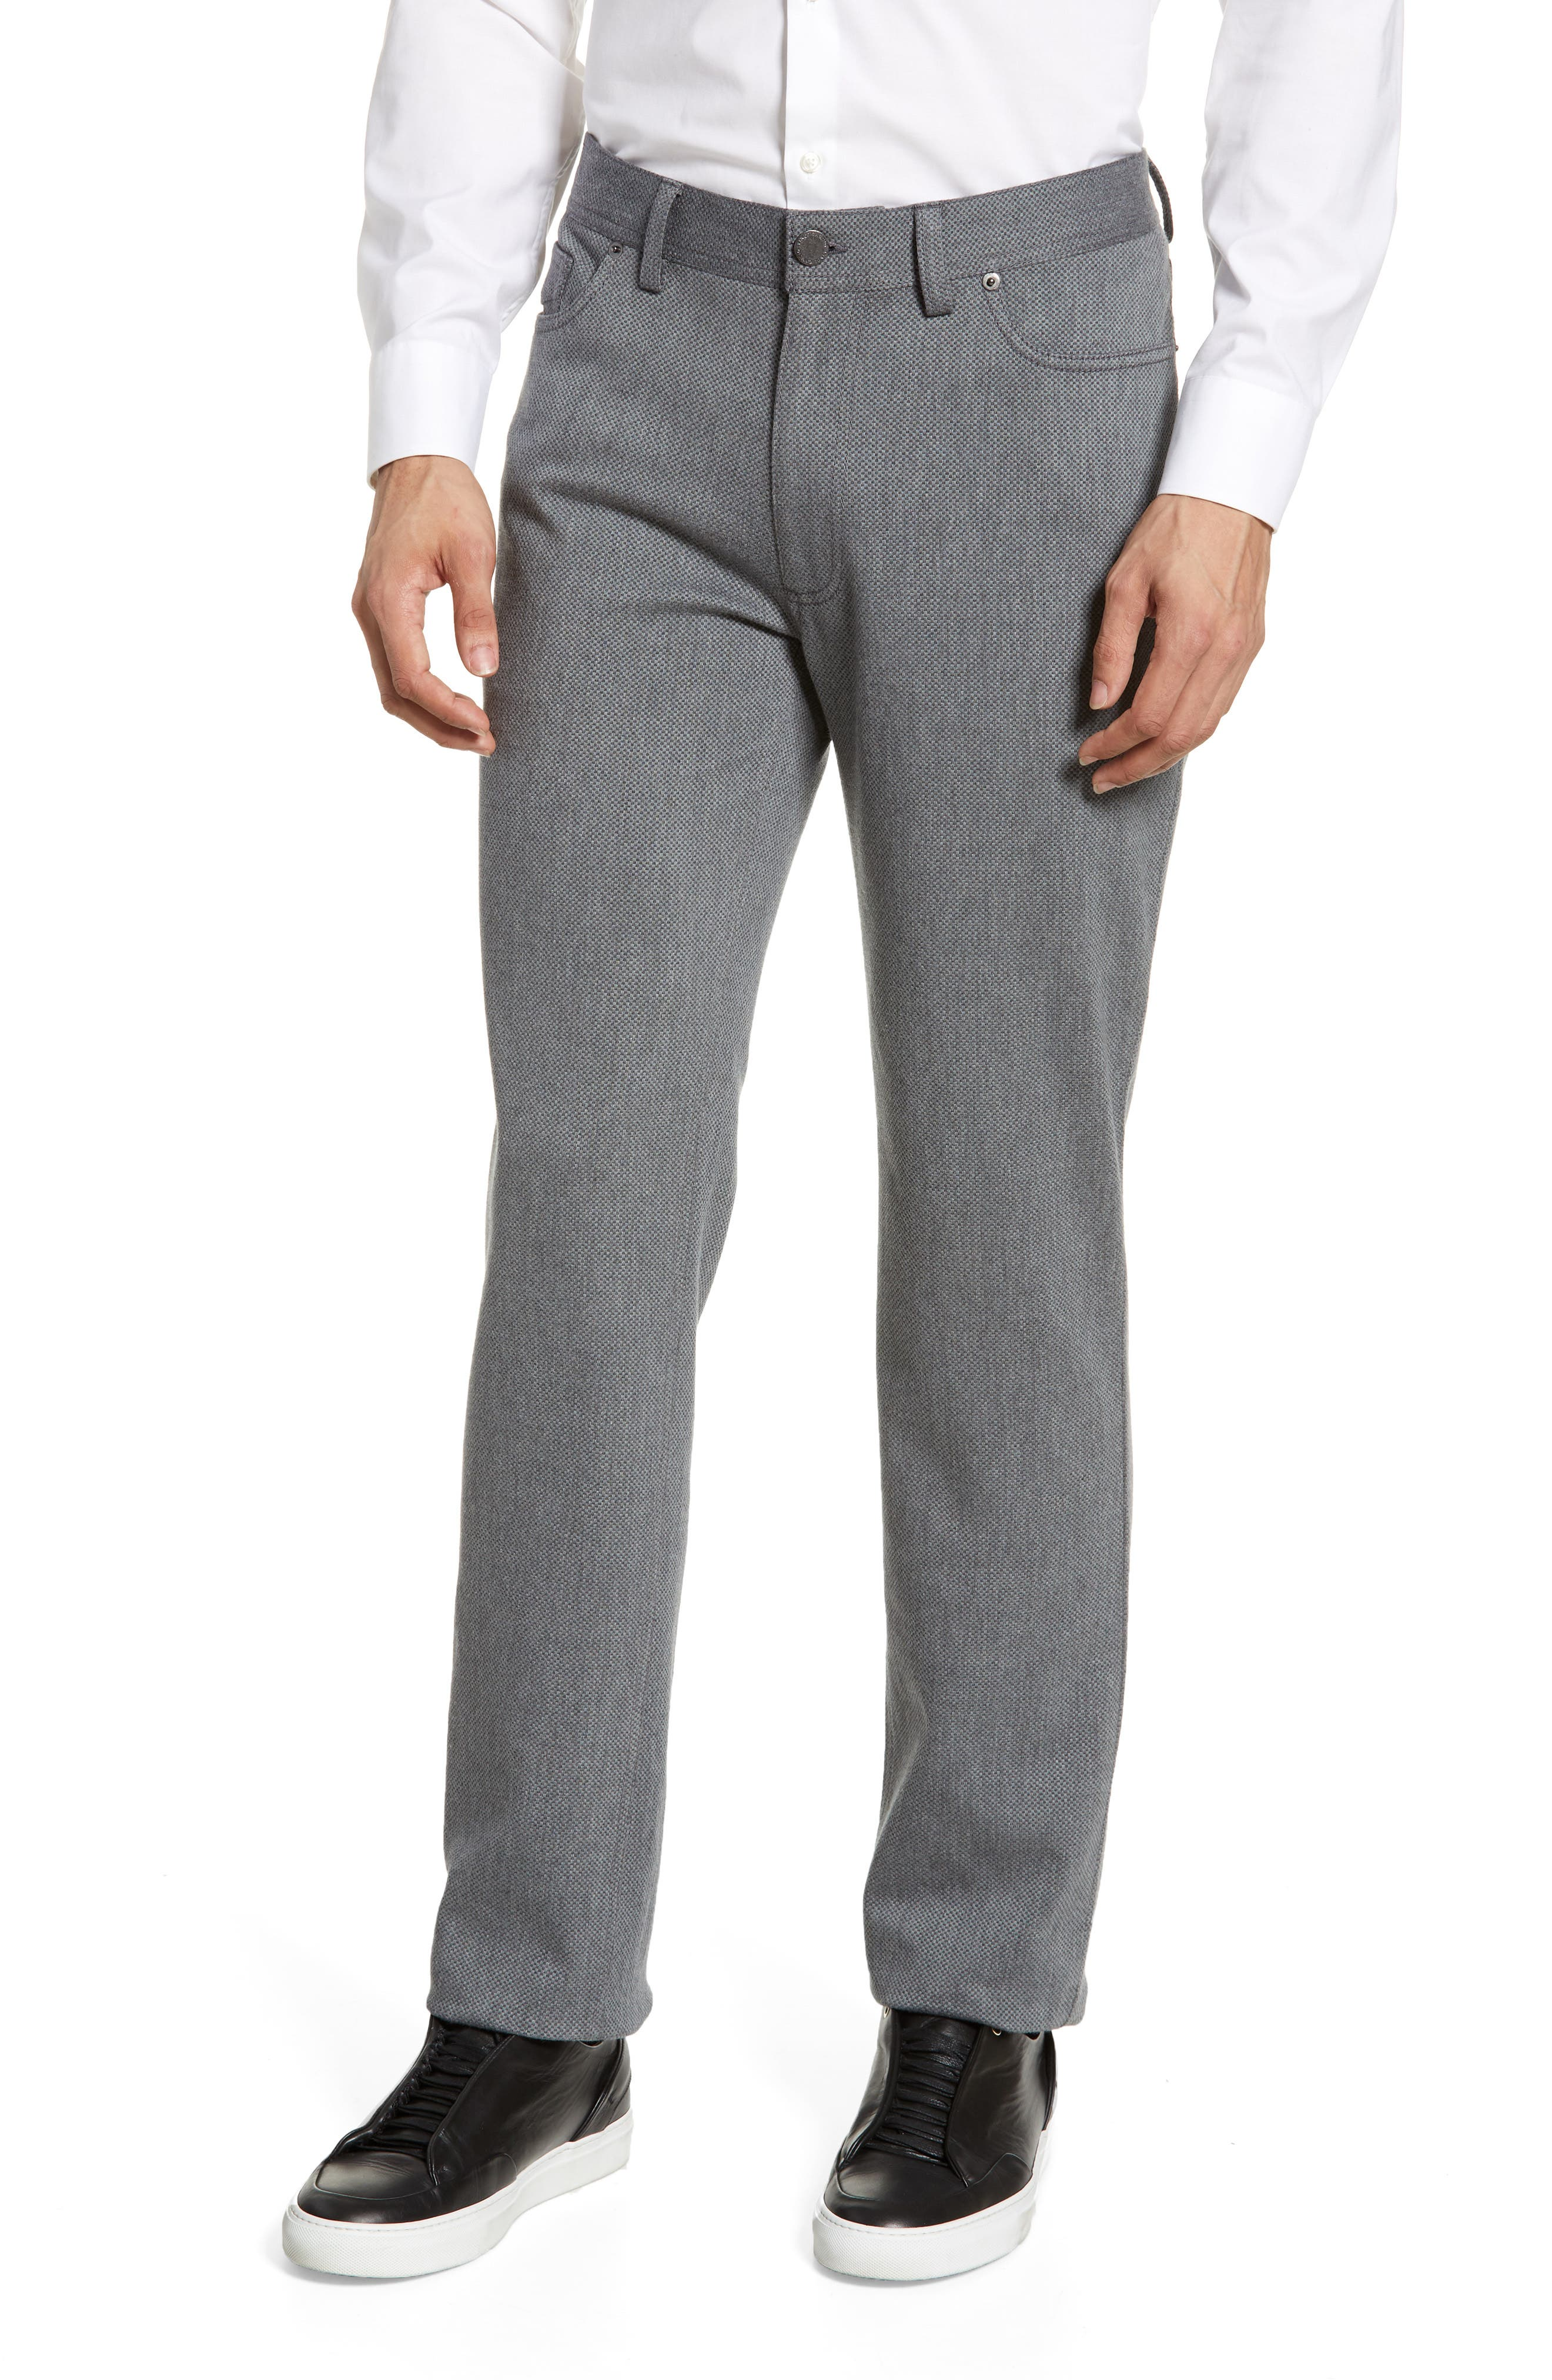 VINCE CAMUTO, Straight Leg Five Pocket Stretch Pants, Main thumbnail 1, color, HEATHER CHARCOAL CROSSHATCH